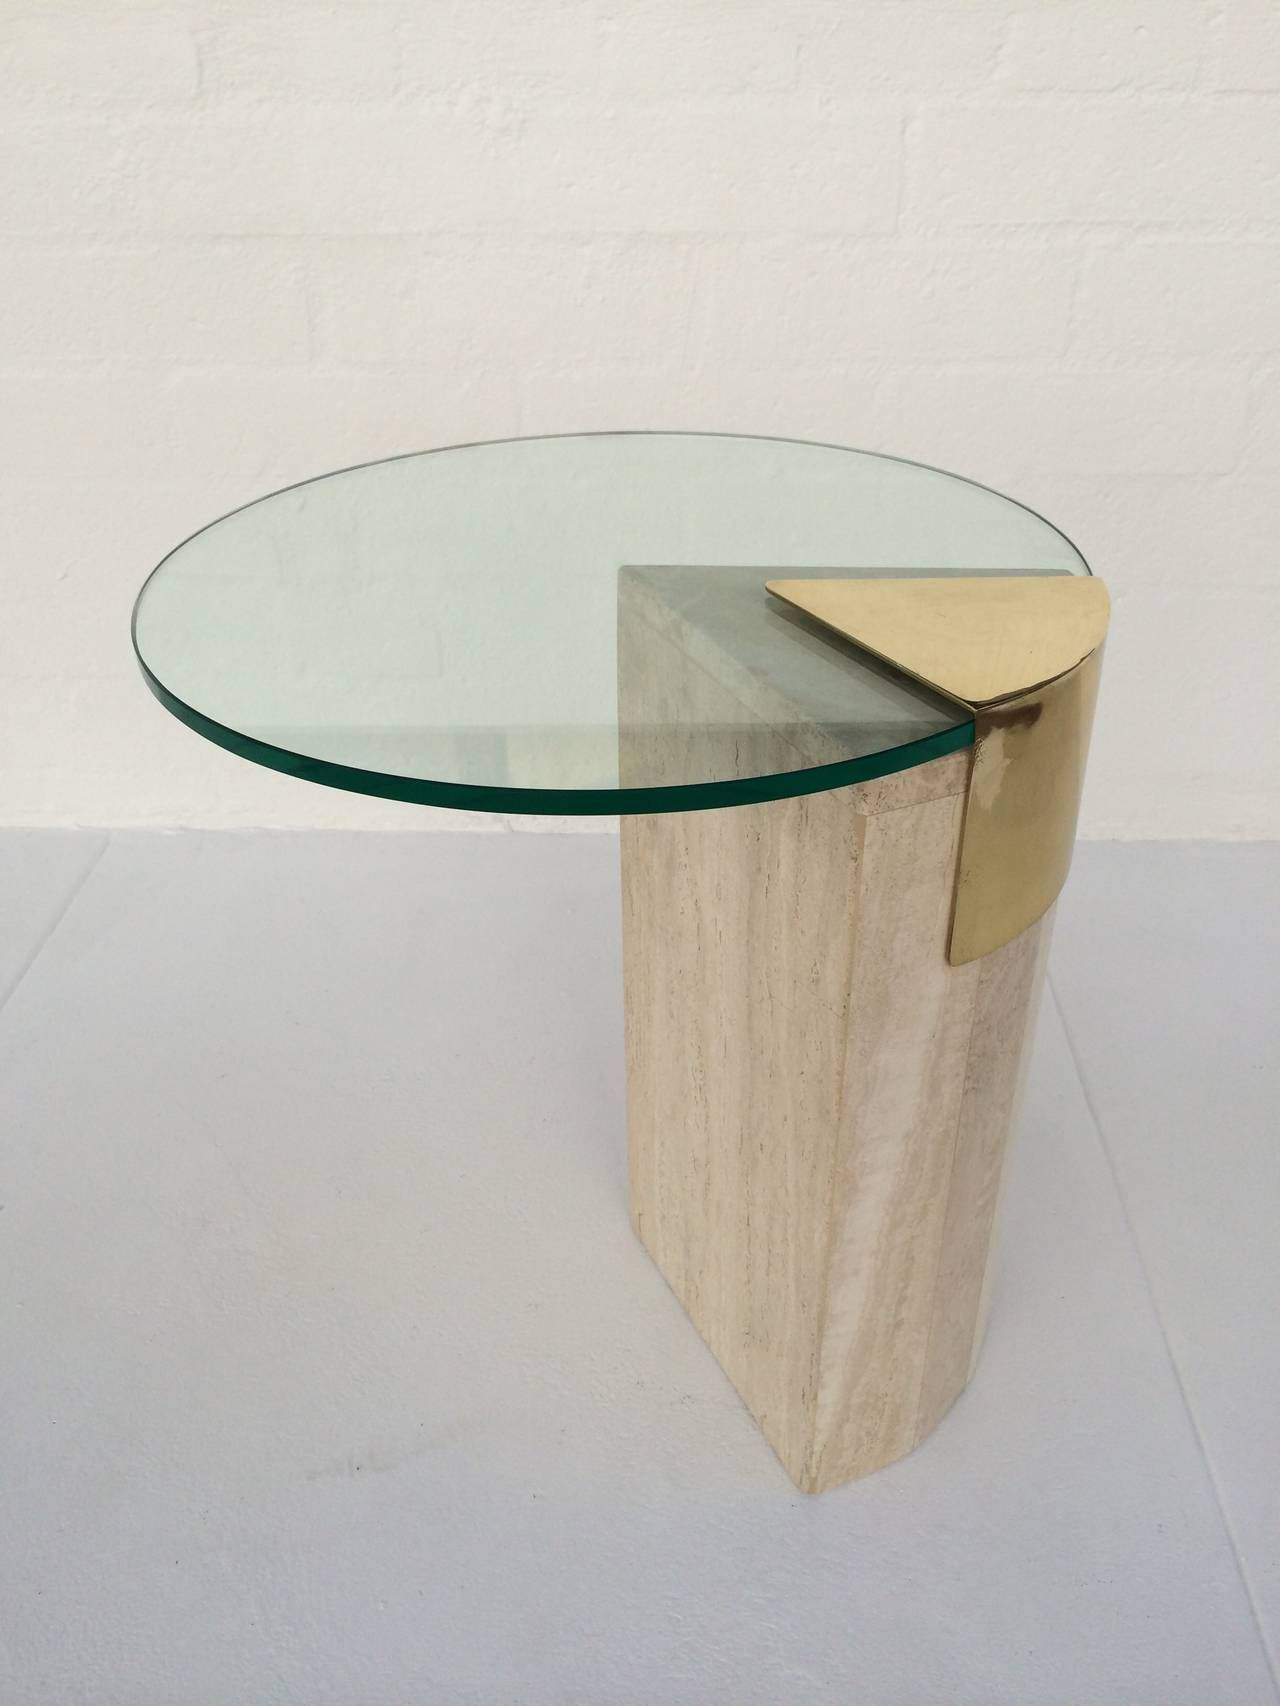 Travertine And Brass With Glass Side Table By Pace Collection Side Table Glass Side Tables Travertine [ 1706 x 1280 Pixel ]